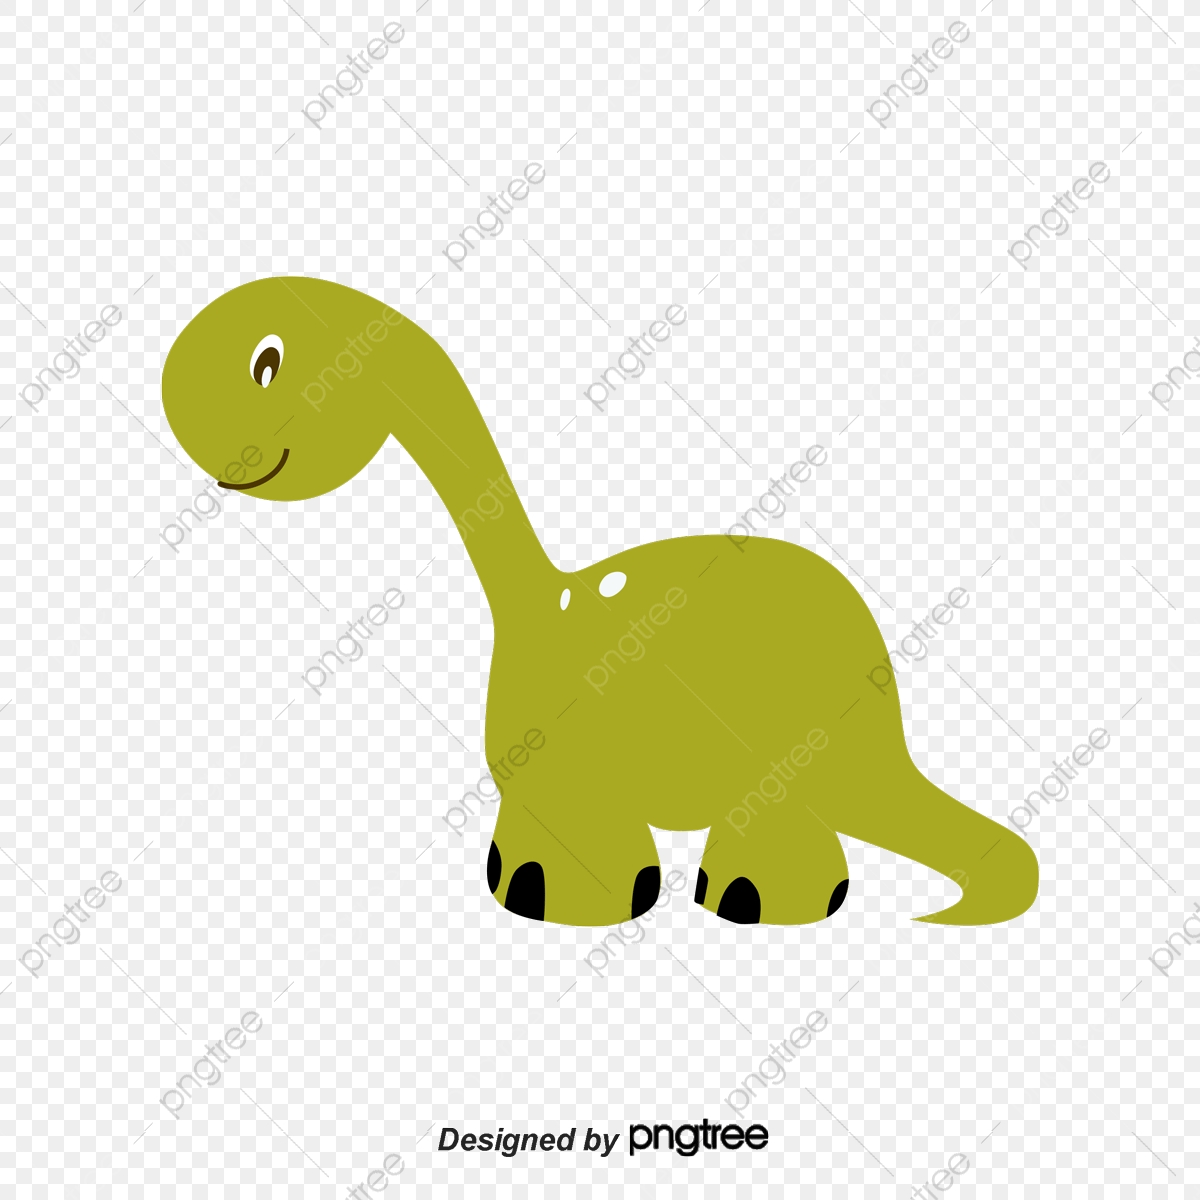 Blue Dinosaur Vector, Jurassic, Anime, Hand Painted PNG and Vector.